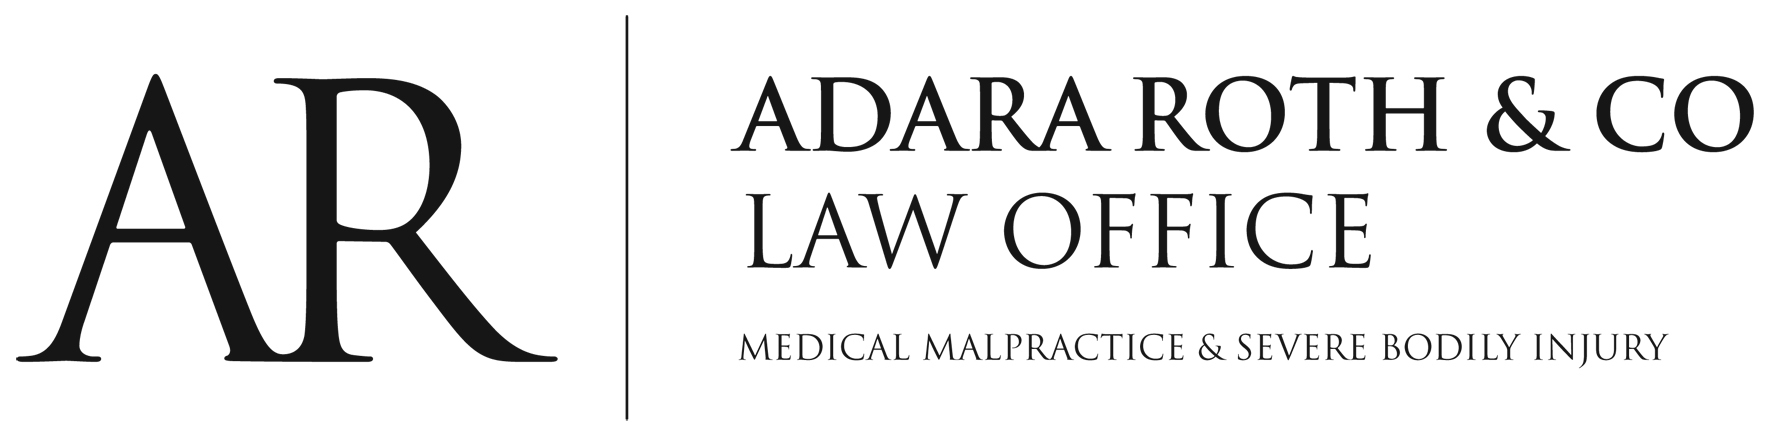 Adara Roth & Co., Law Firm